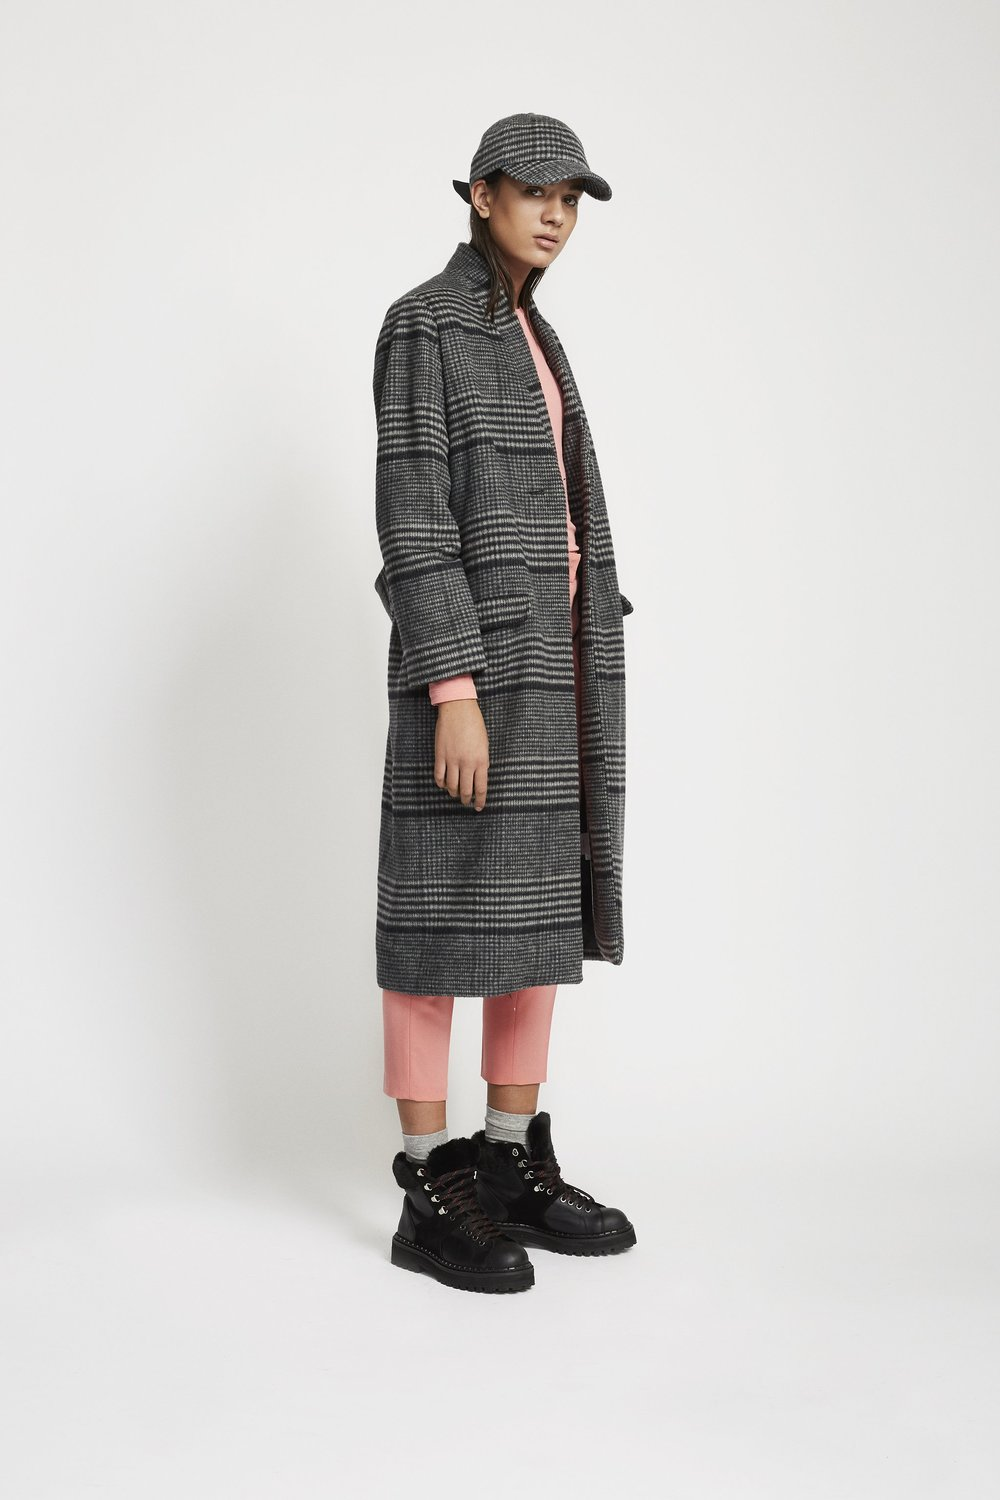 Estelle_Checked_Wool_Coat-Jacket-8294-14867-889_Black_White_check_2048x.jpg